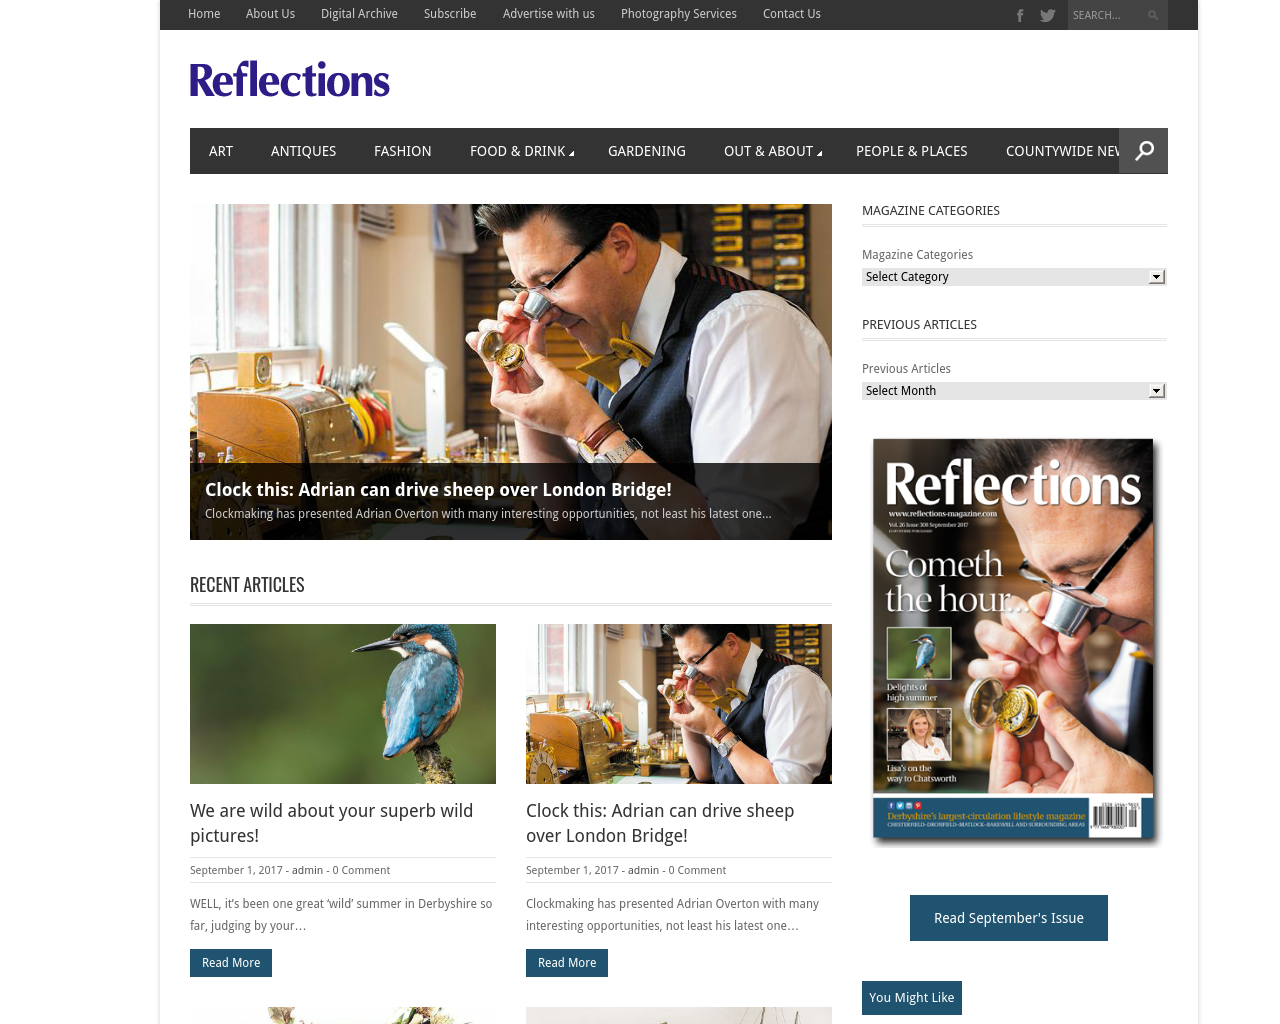 Reflections-magazine.com-Advertising-Reviews-Pricing